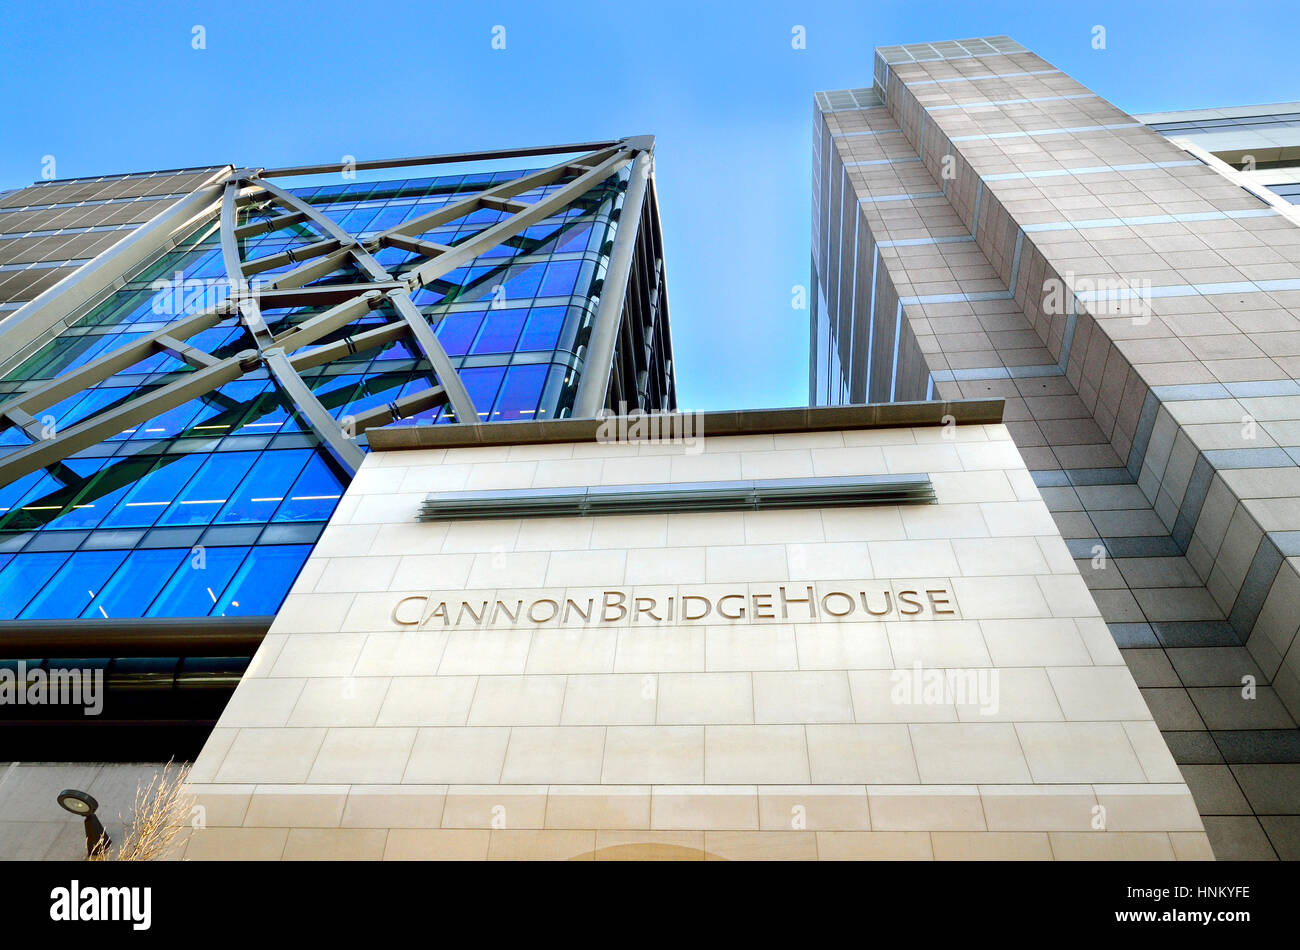 London, England, UK. Cannon Bridge House or The River Building EC4 (1991) office buildings - Stock Image